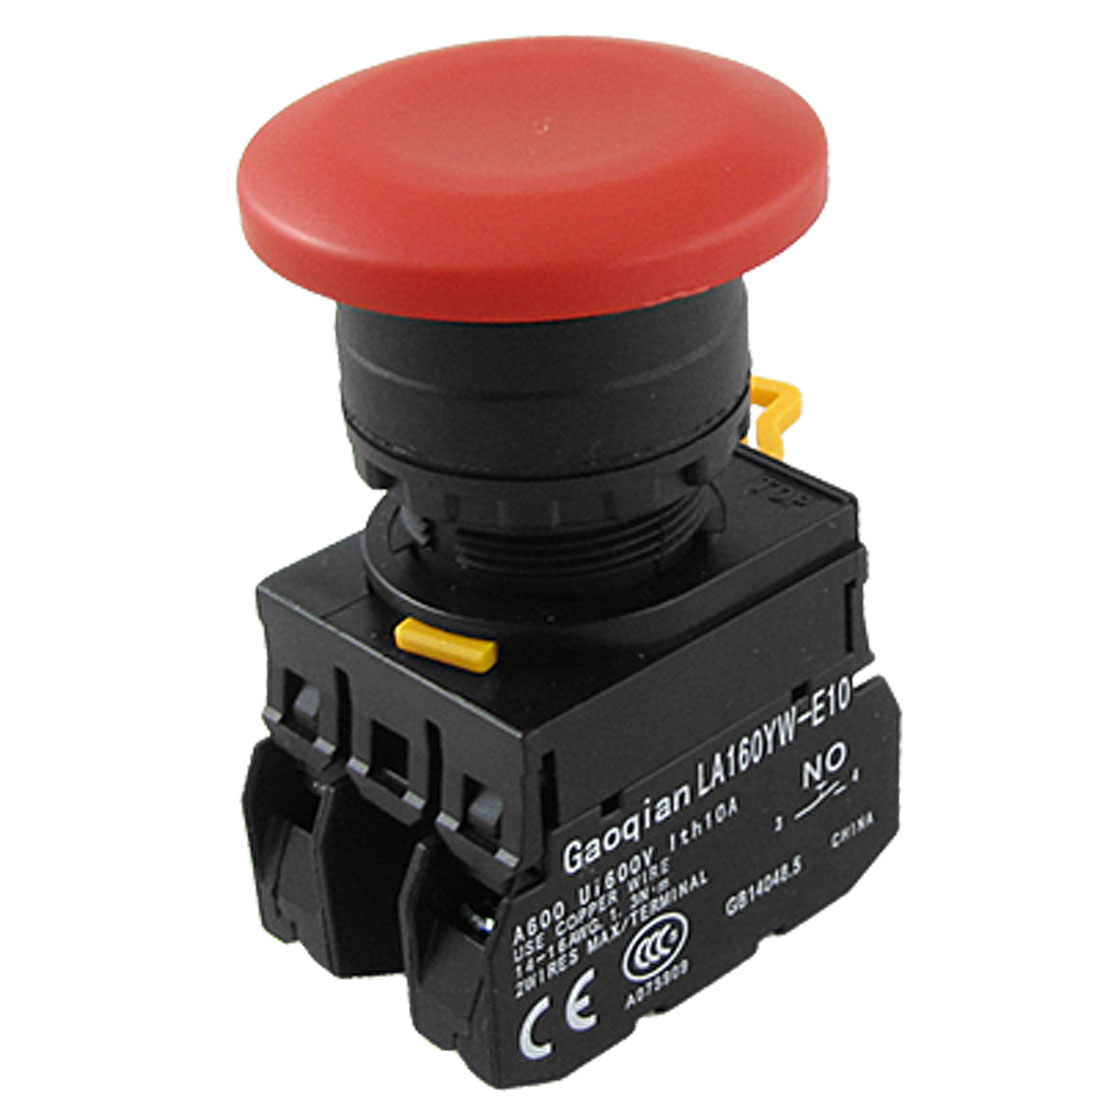 Emergency Stop Momentary Action 1NC 1NO 4 Terminals Red Mushroom Push Button Switch